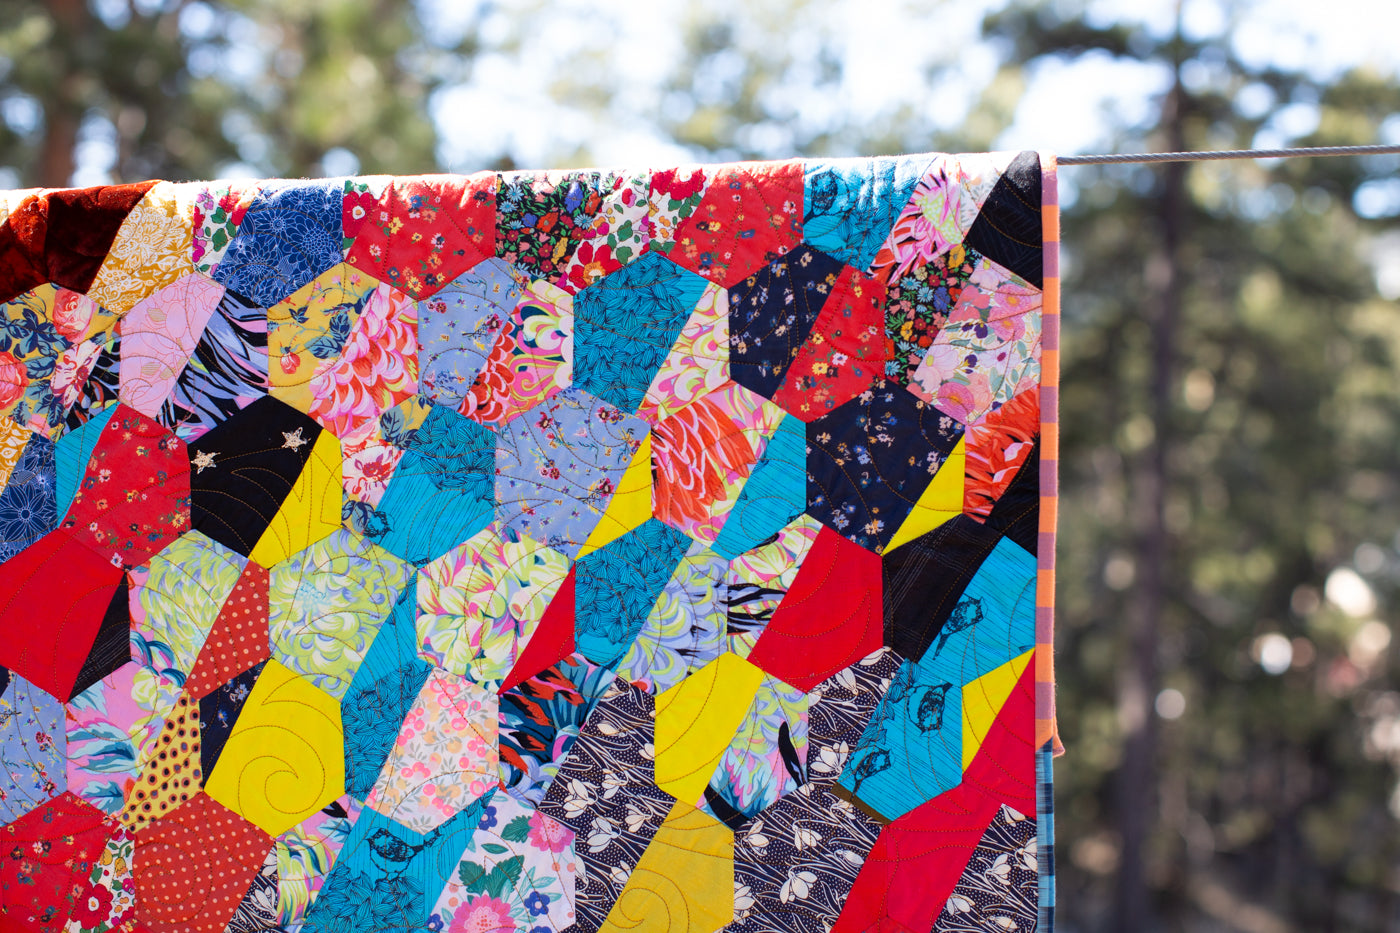 Close up of quilt with colorful geometric blocking background is evergreen trees.